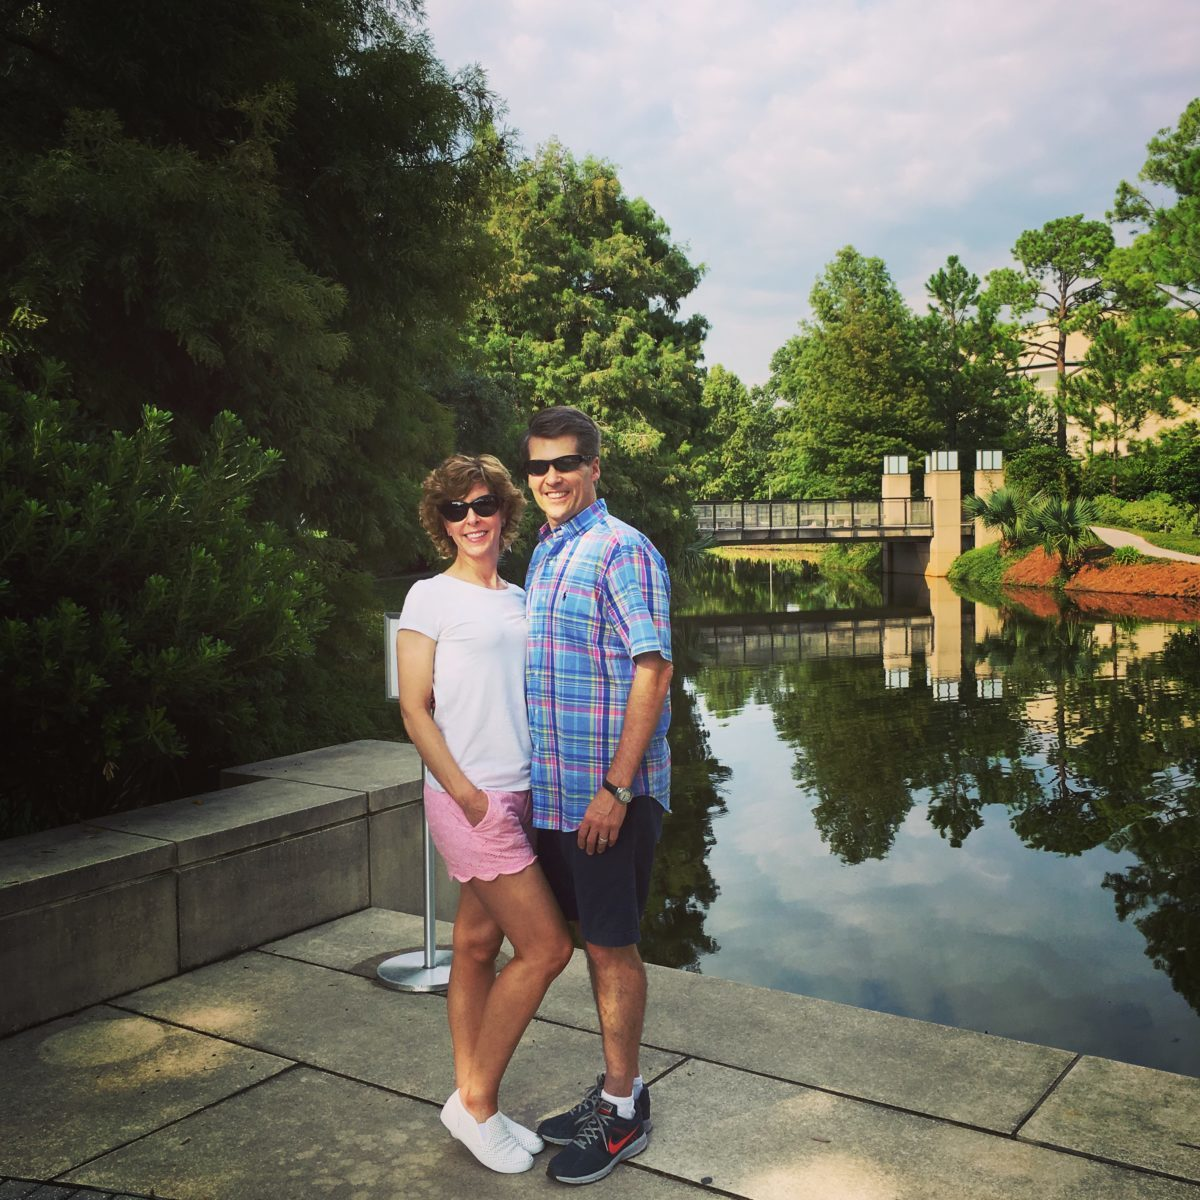 new orleans trip - new orleans botanic gardens - new orleans getaway